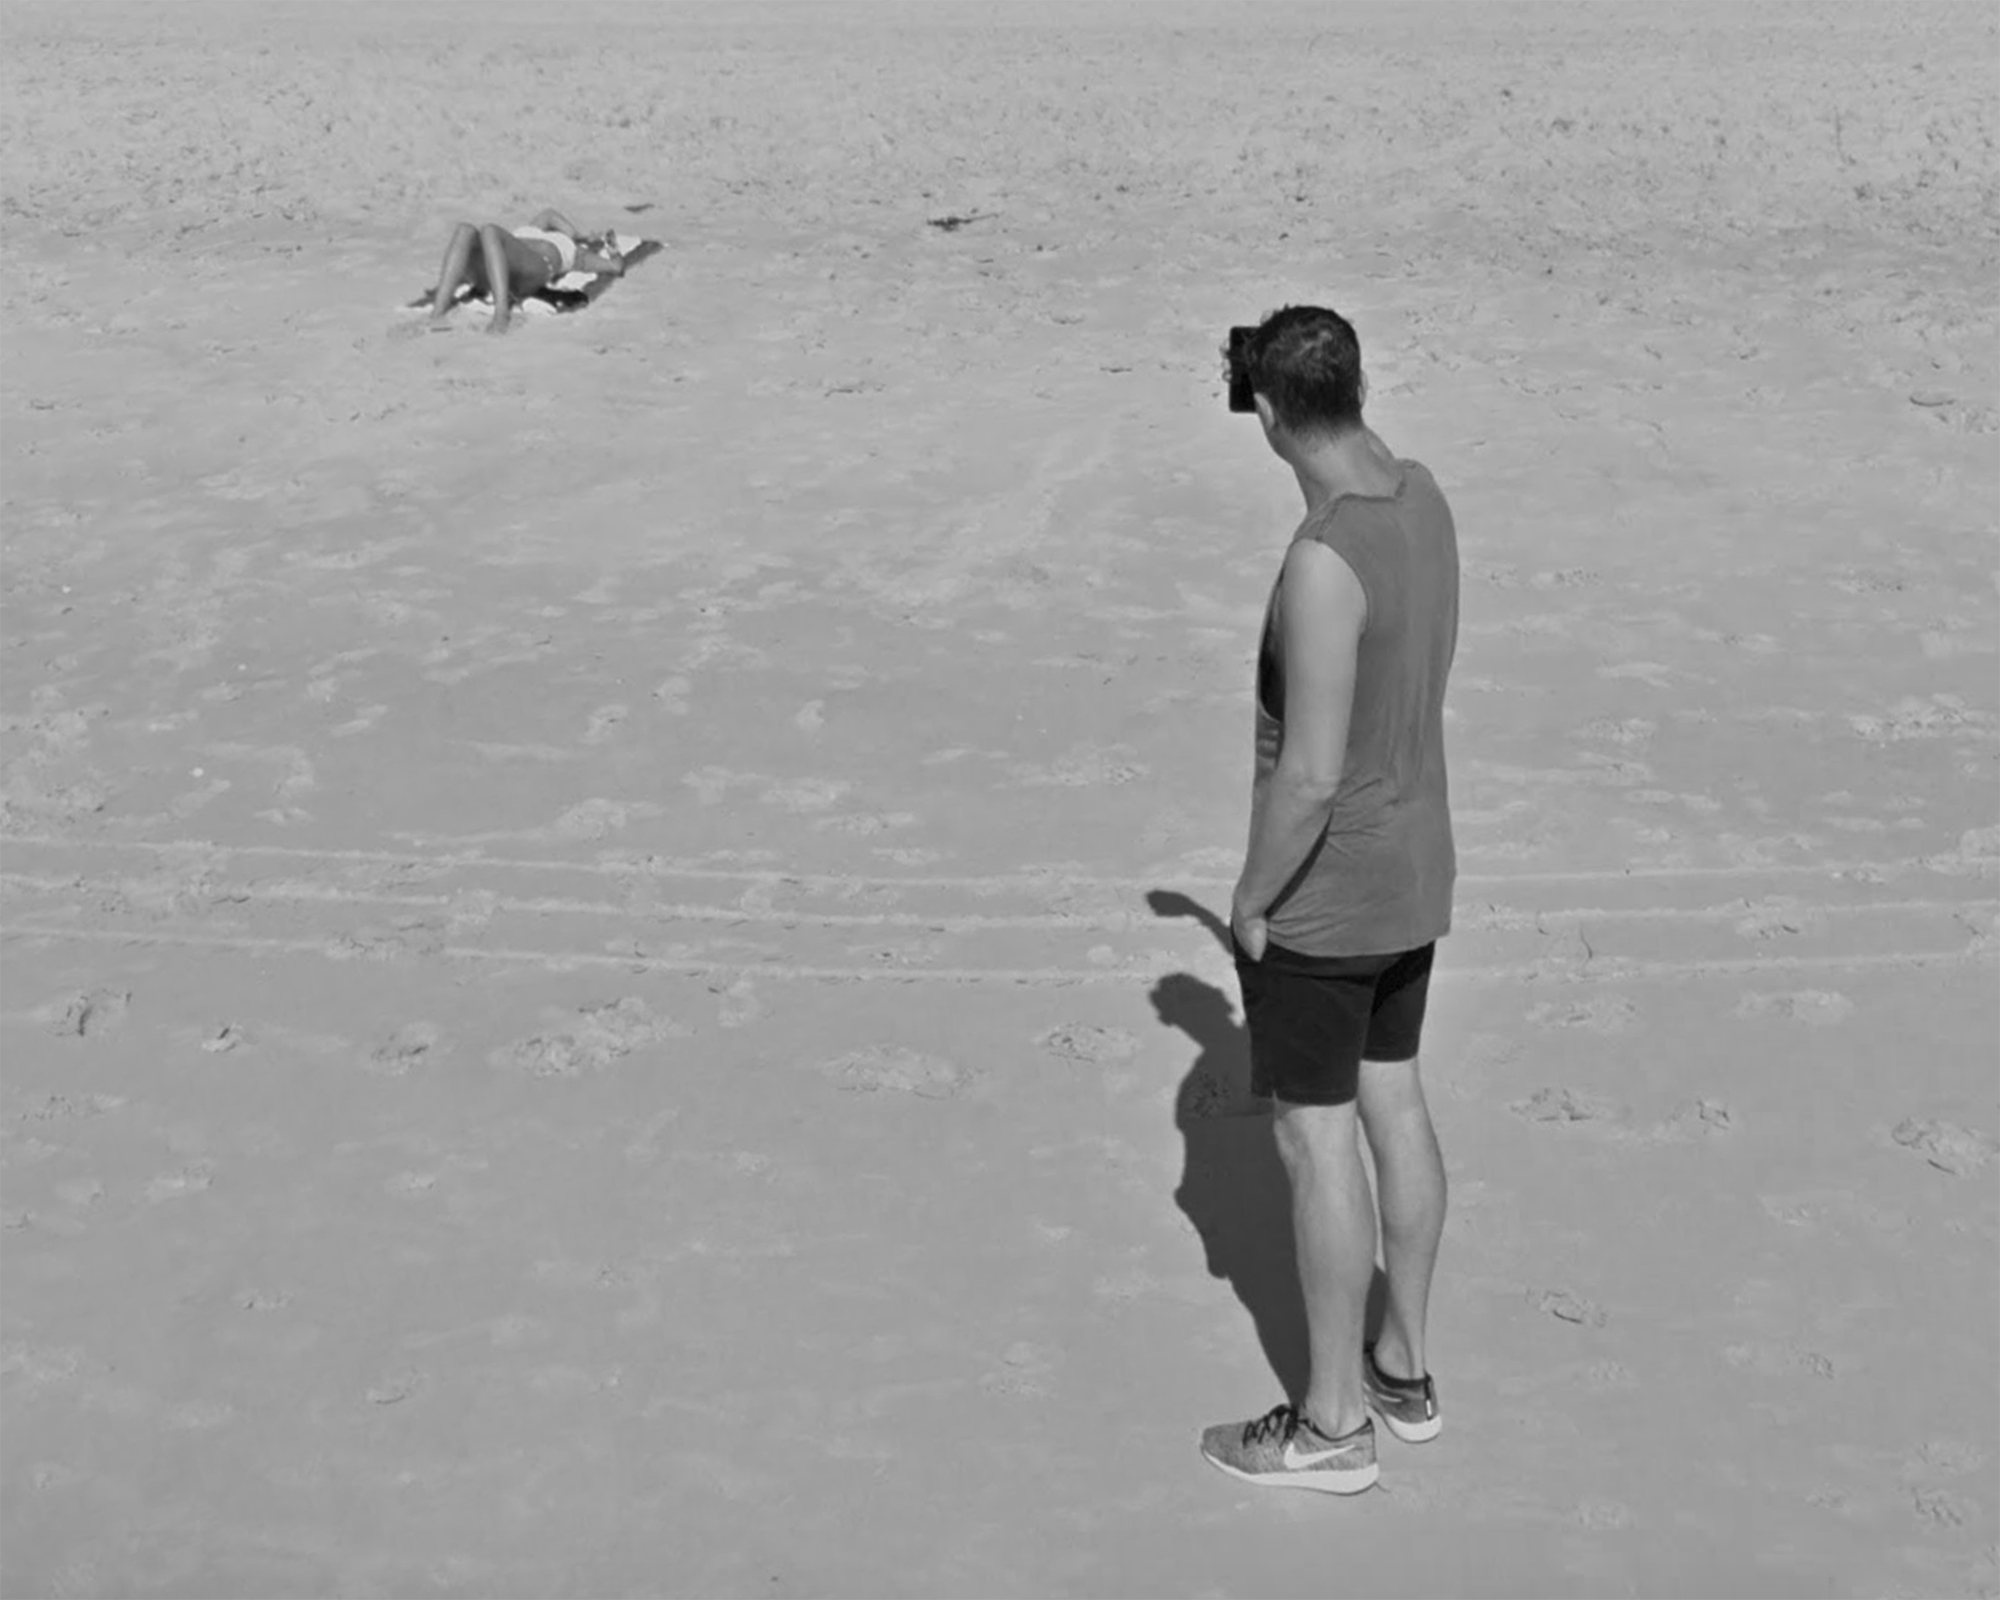 Voyeur, Google Street View, Miami Beach, Florida